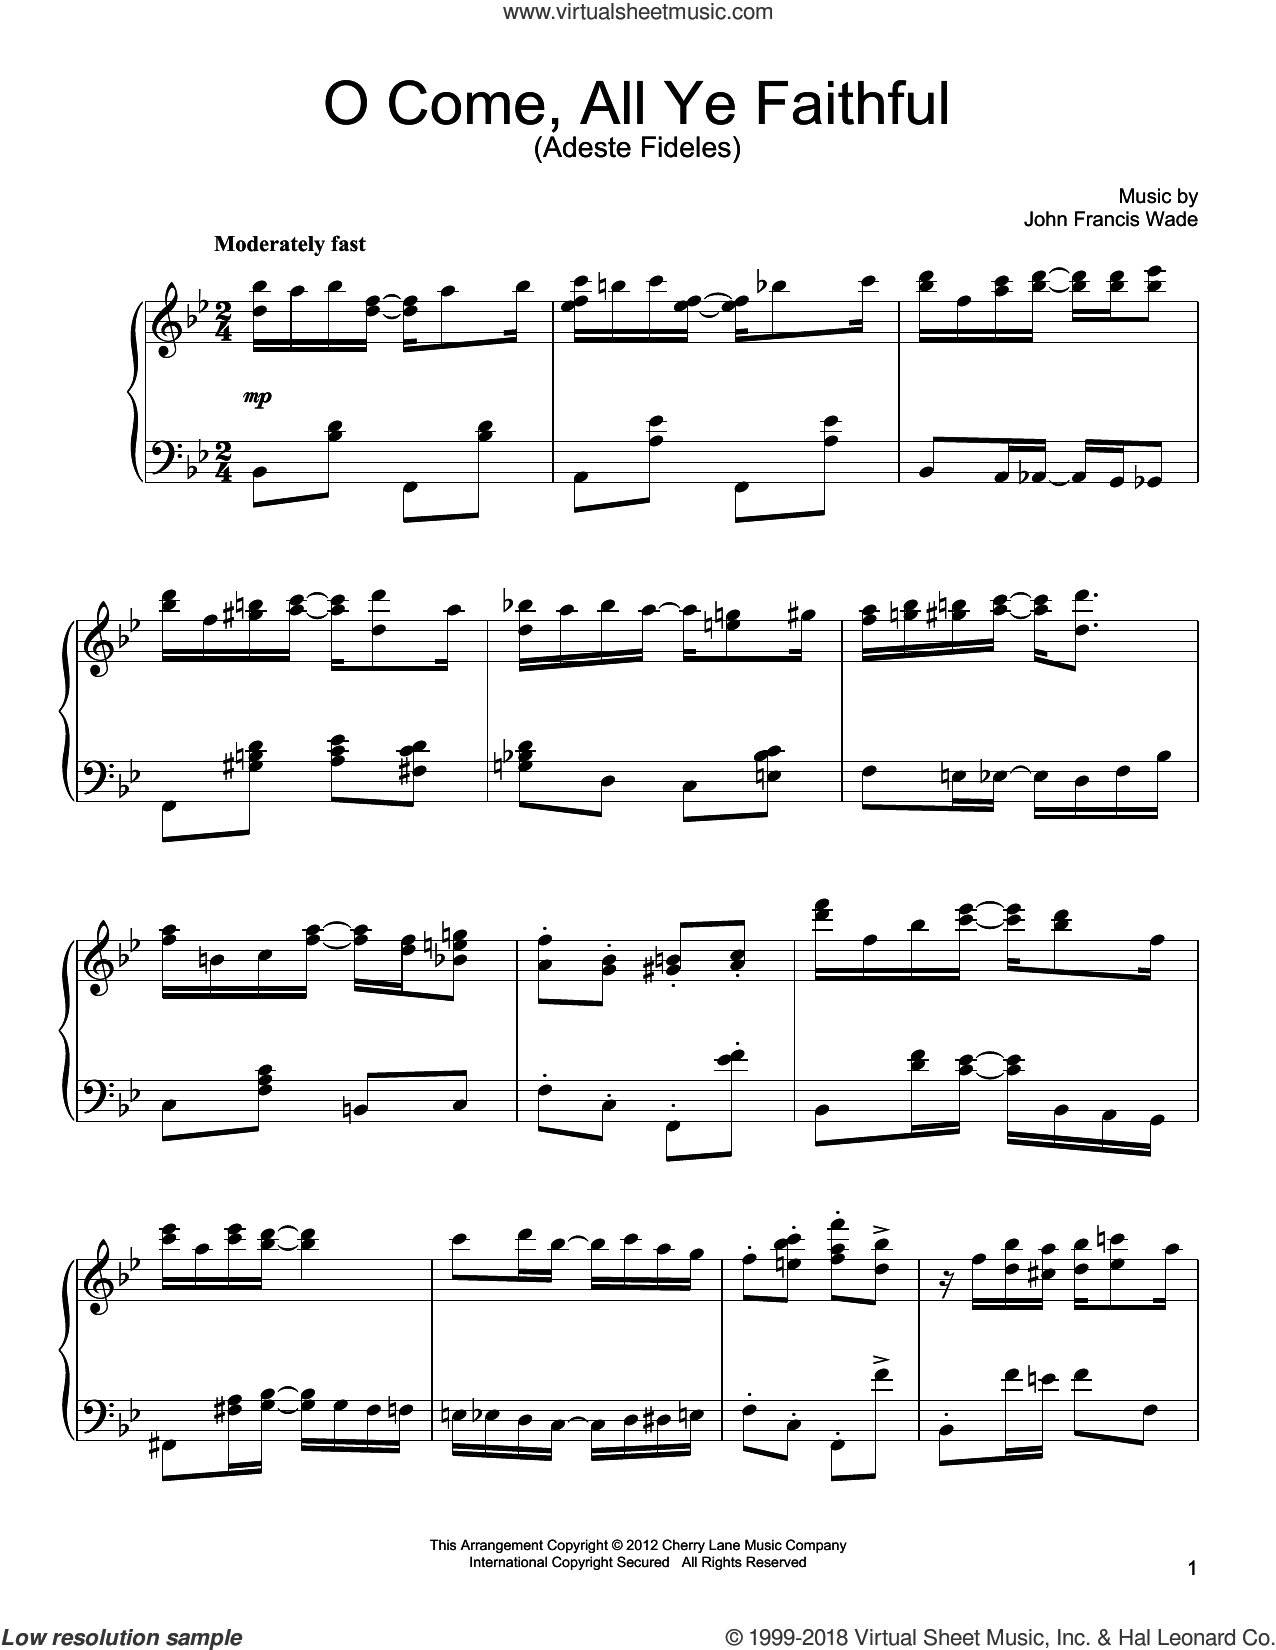 O Come, All Ye Faithful (Adeste Fideles) [Ragtime version] sheet music for piano solo by John Francis Wade, intermediate skill level